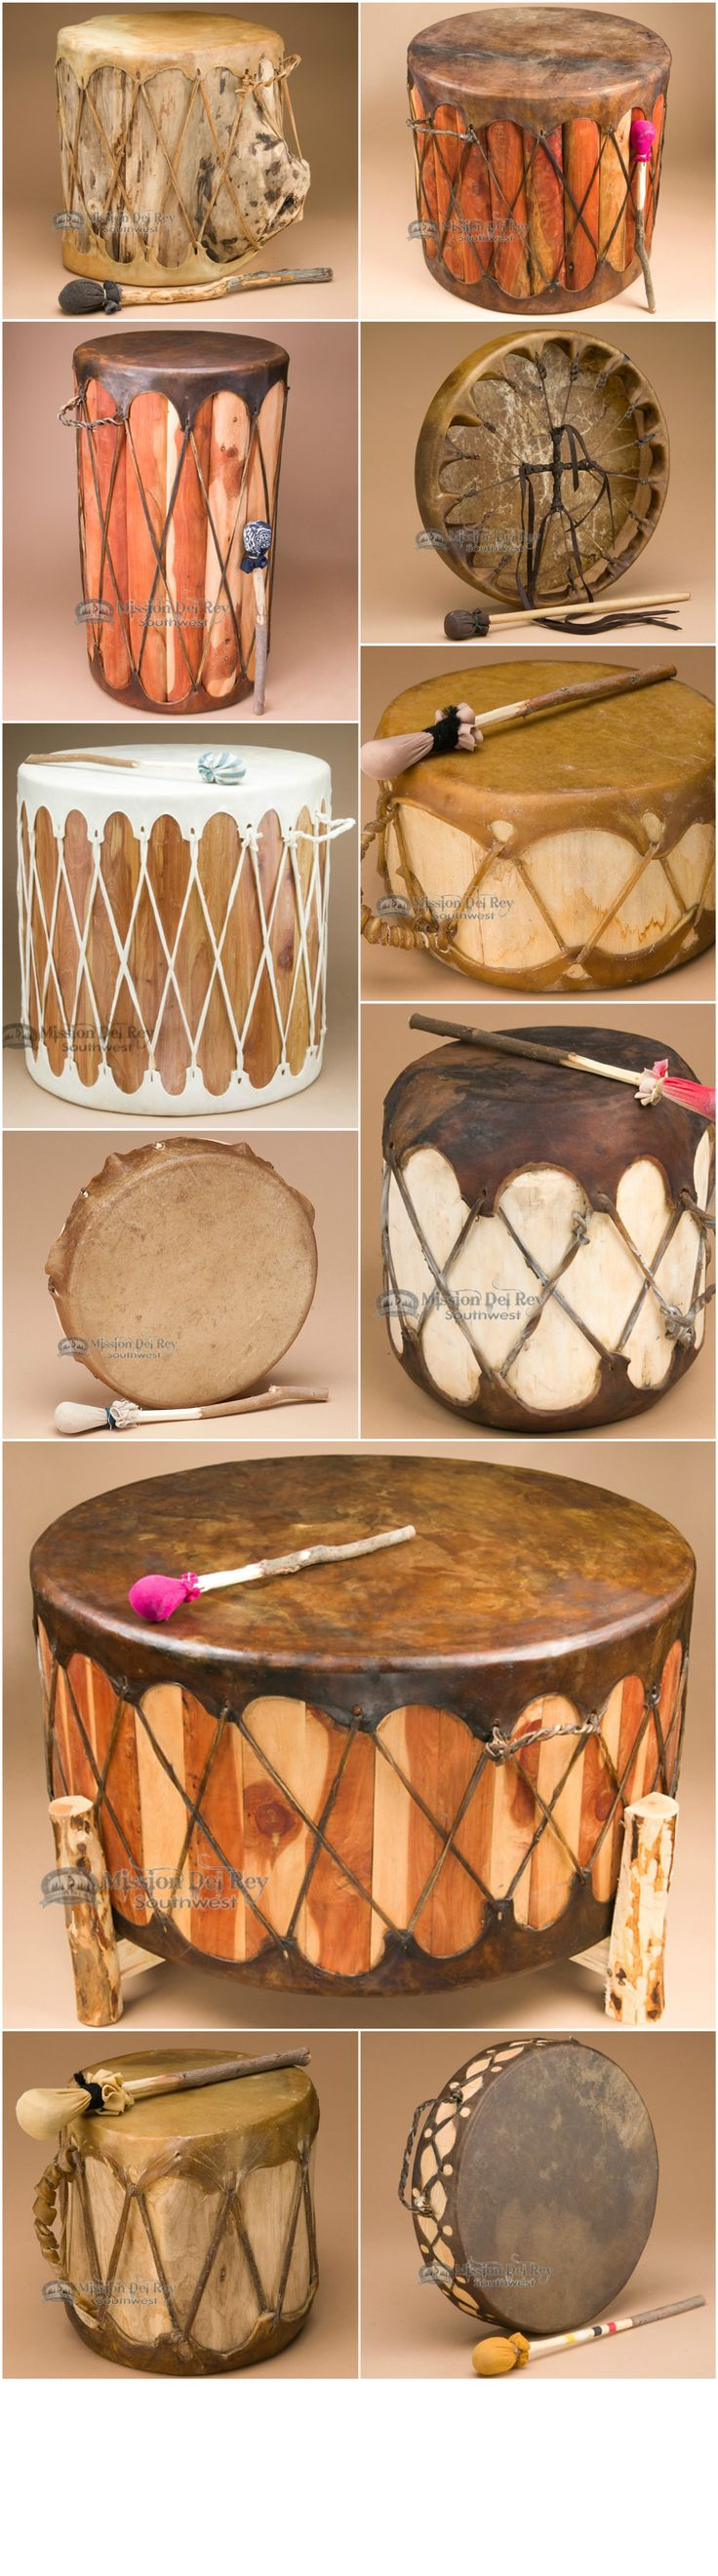 See our entire collection of Native American hand drums, hoop drums, log drums and ceremonial drums.  Weather you are looking for the perfect Native drum for personal meditation, drumming groups, or to use as southwest decor, your will love the quality craftsmanship you find at Mission Del Rey.  Sign up for our newsletter to receive exclusive discounts and coupons.